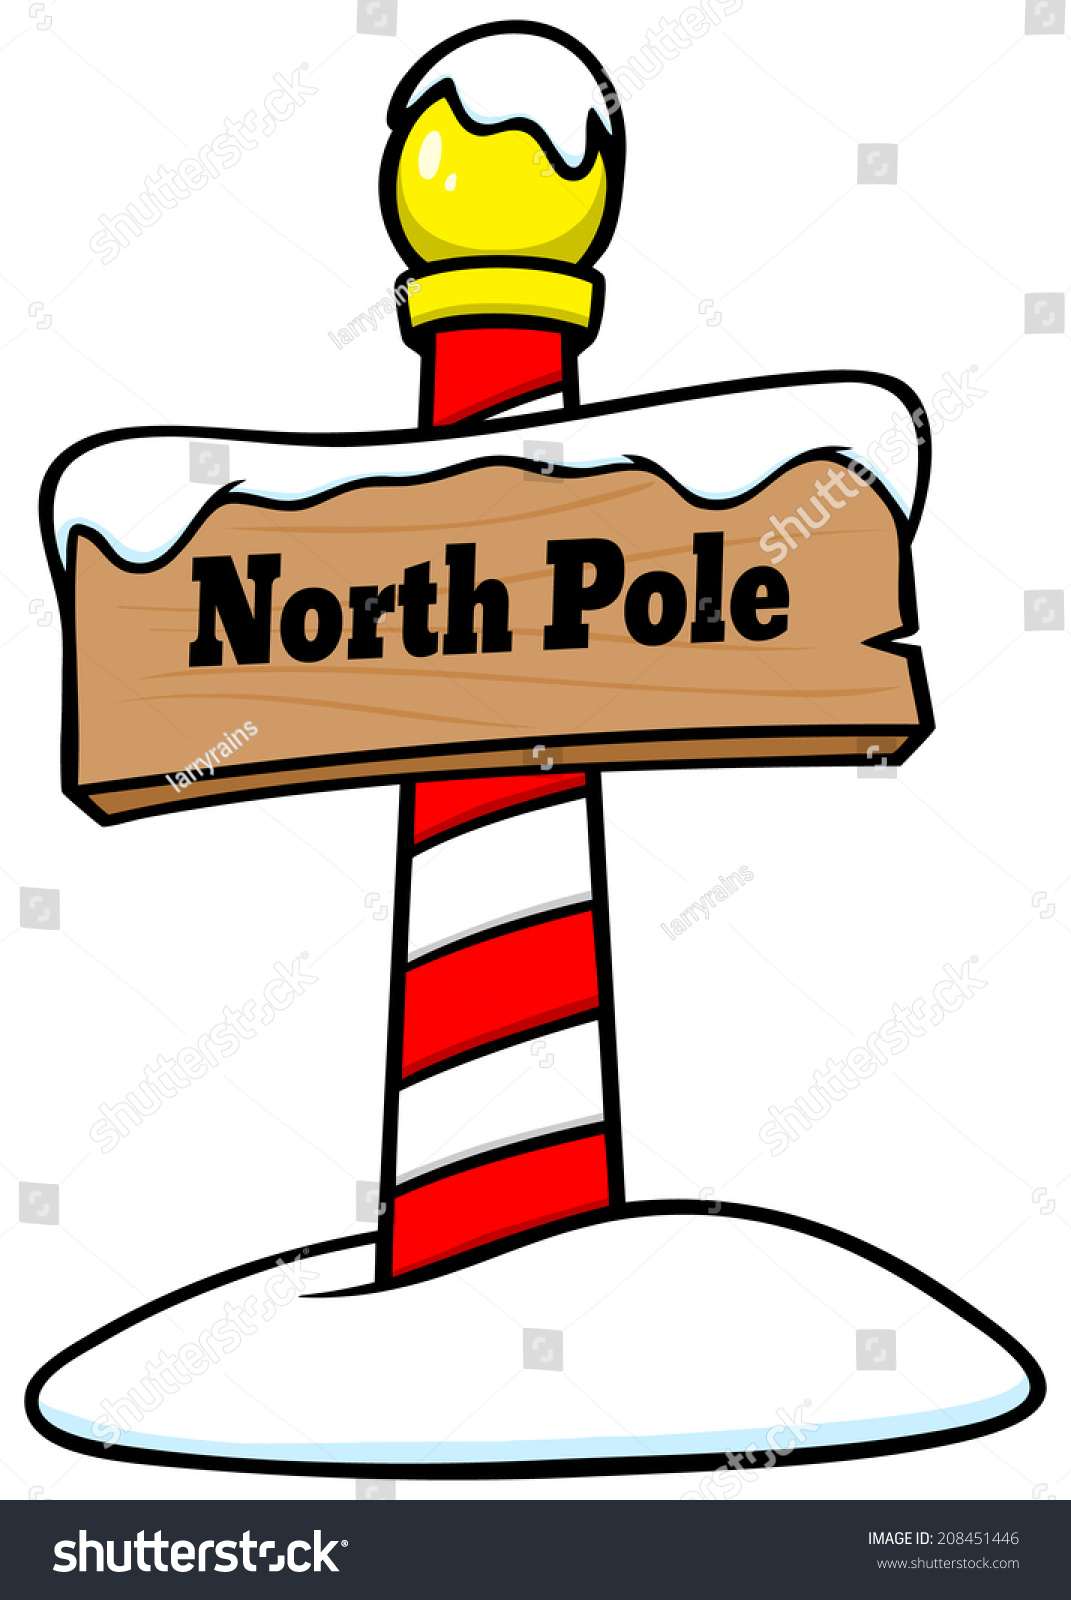 north pole sign stock vector 2018 208451446 shutterstock rh shutterstock com north pole sign clipart north pole sign clipart free